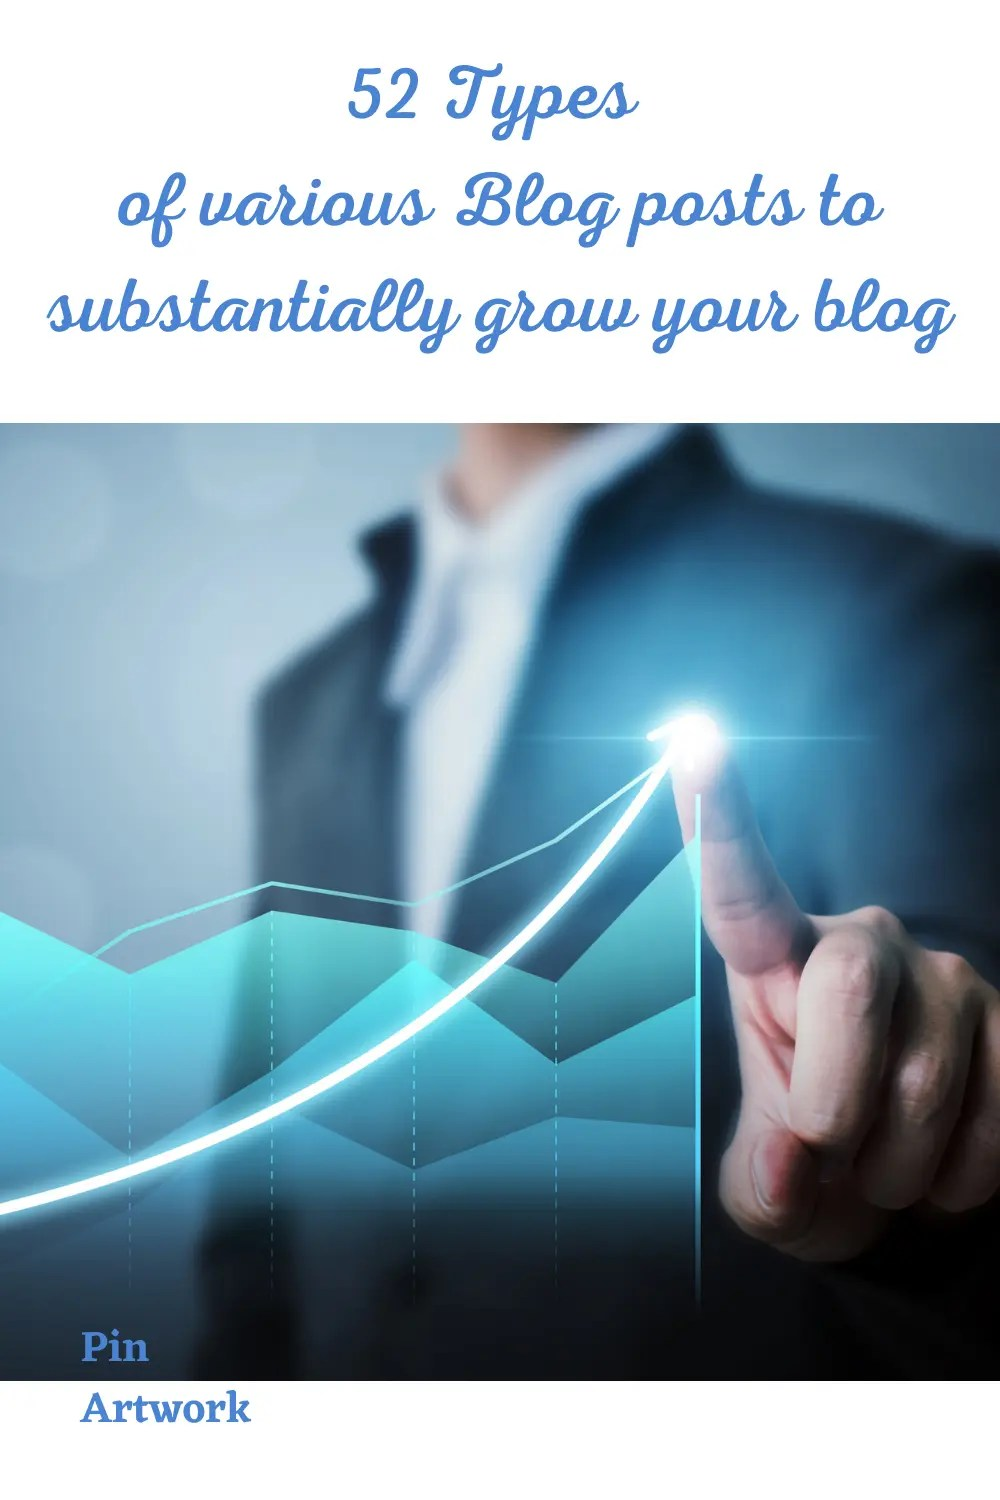 52 blog post types to grow your blog